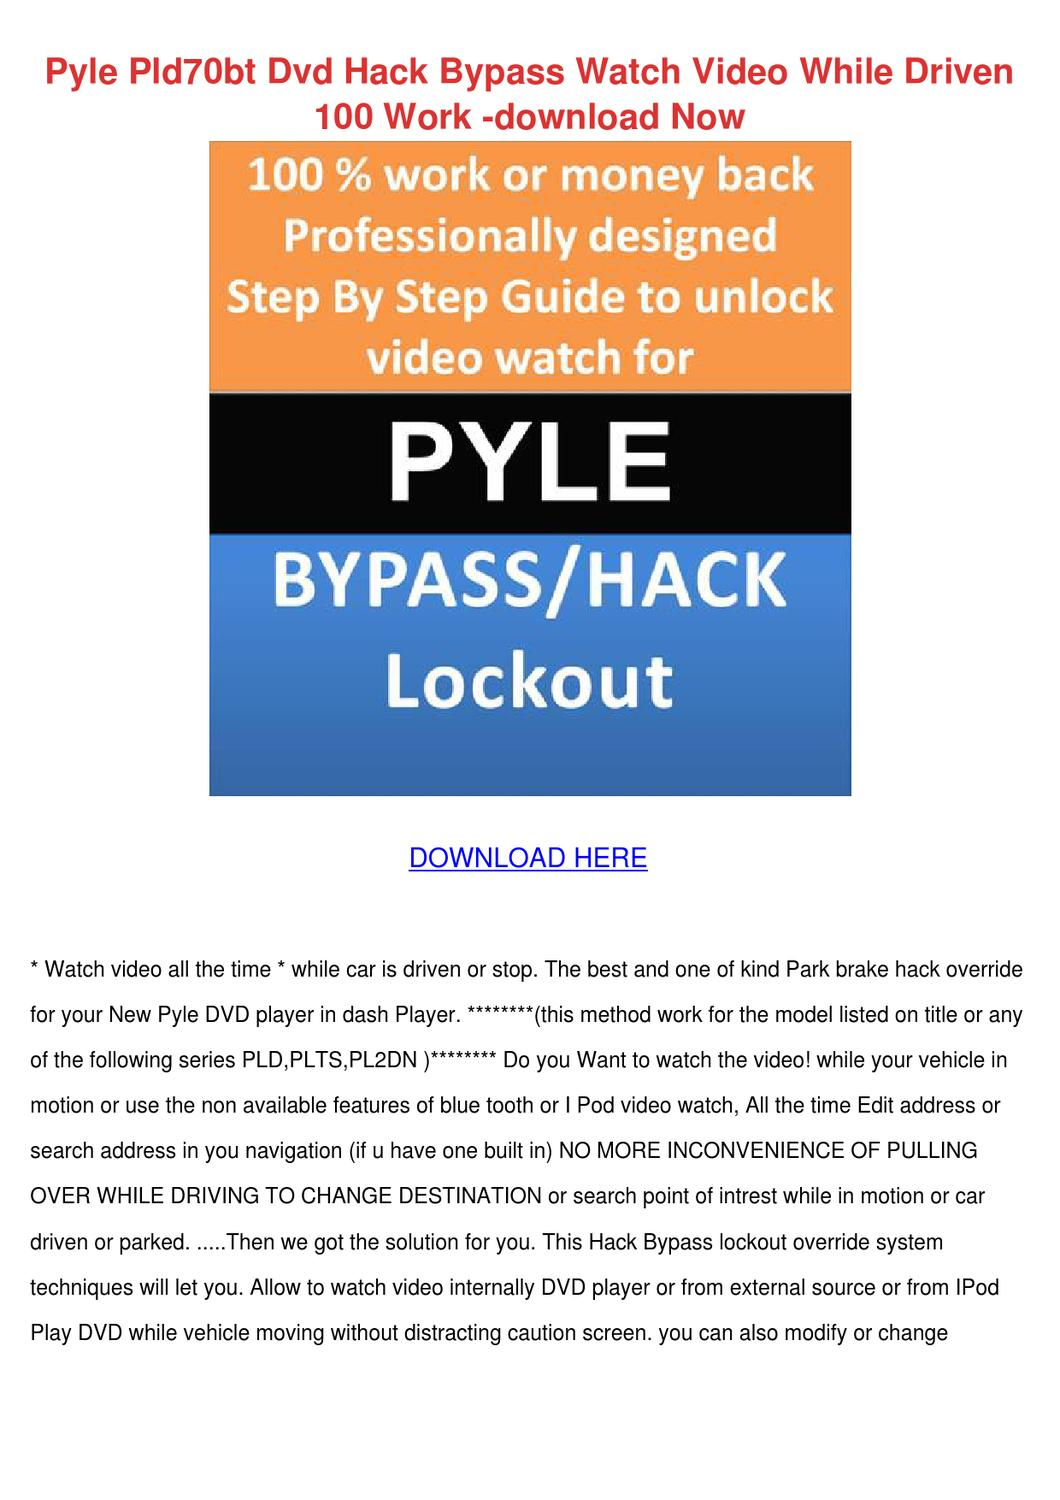 Pyle pld70bt dvd hack bypass watch video whil by patricia dimuccio pyle pld70bt dvd hack bypass watch video whil by patricia dimuccio issuu publicscrutiny Gallery